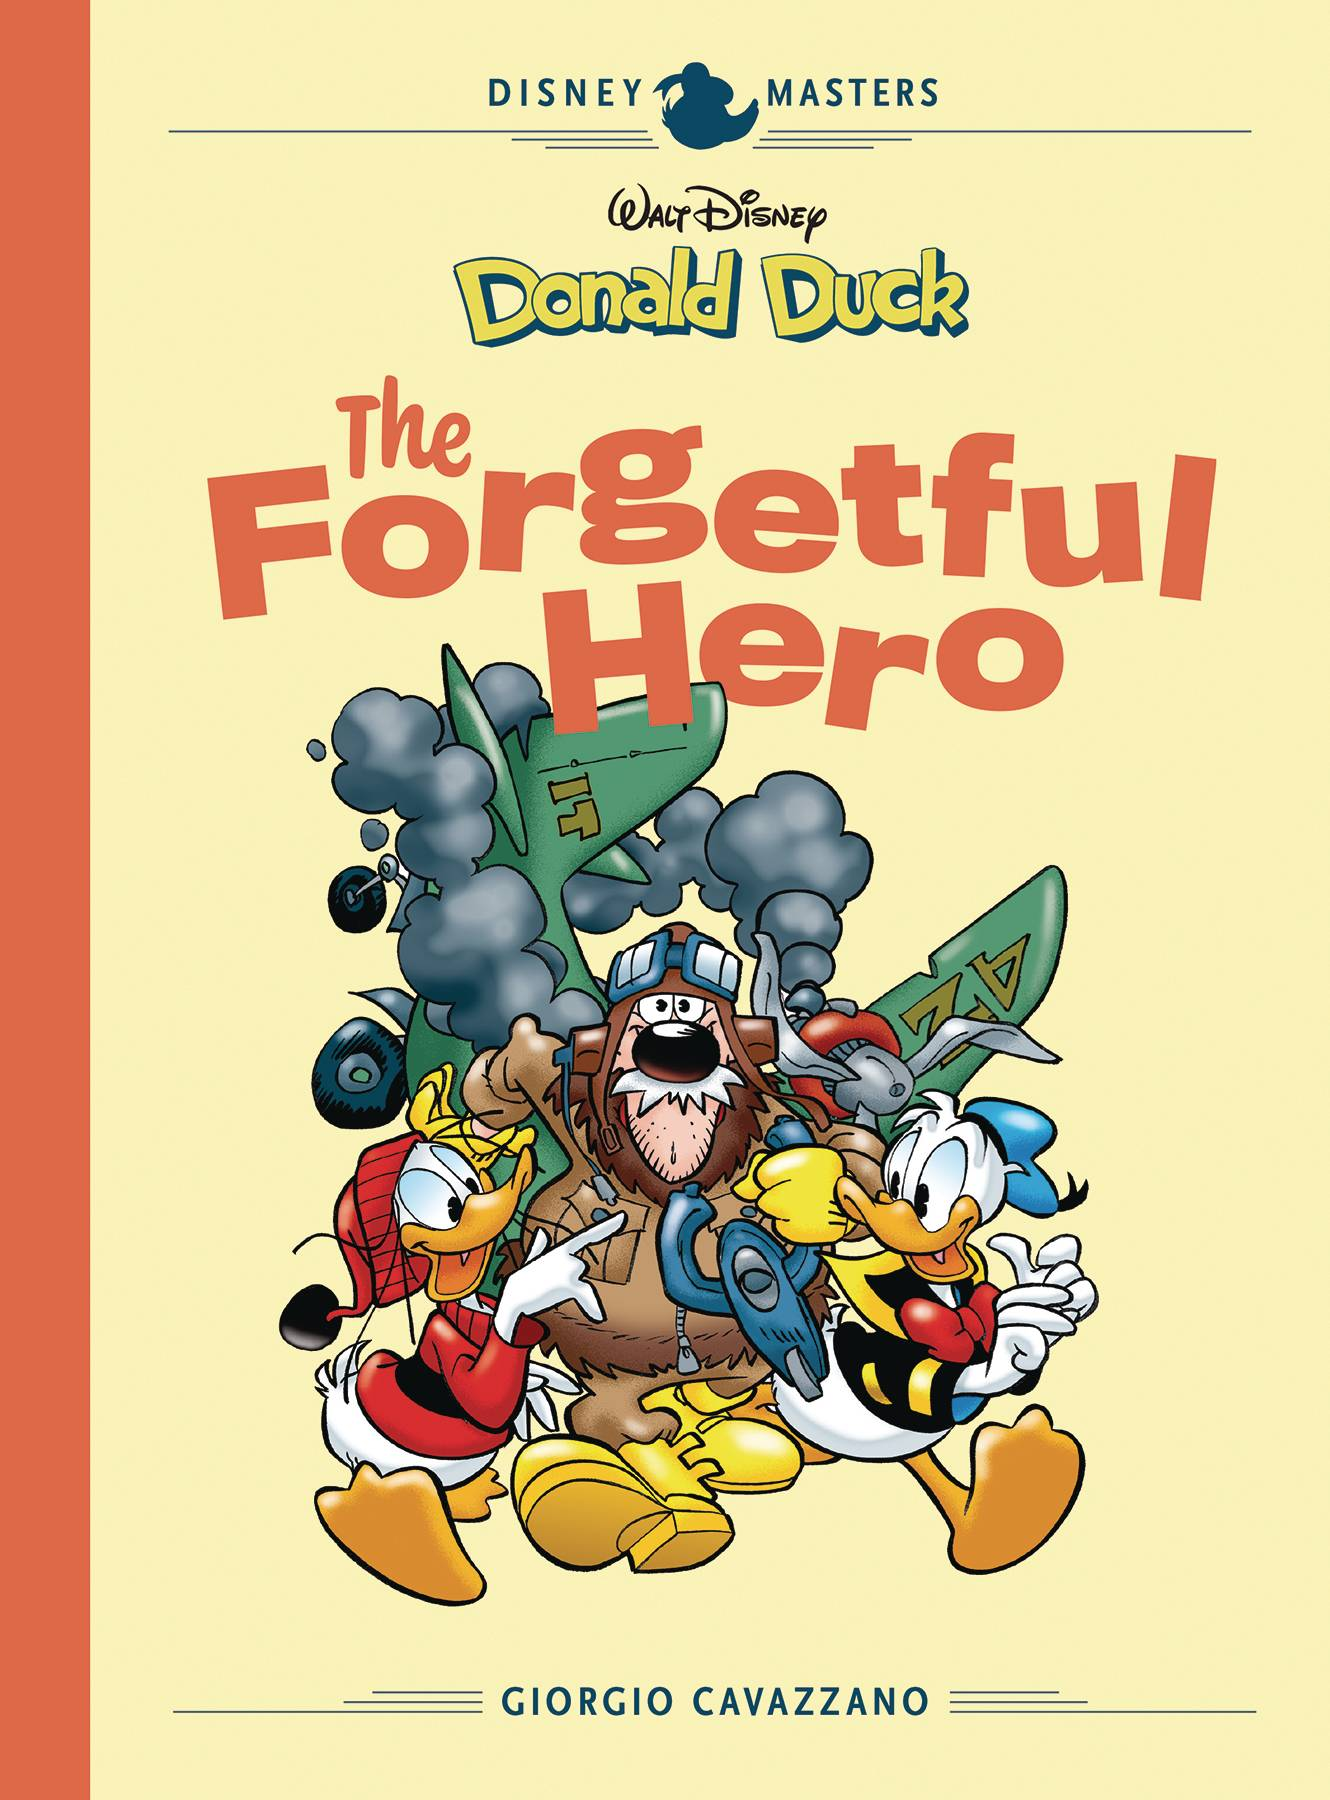 DISNEY MASTERS HC VOL 12 CAVAZZANO DONALD DUCK FORGETFUL